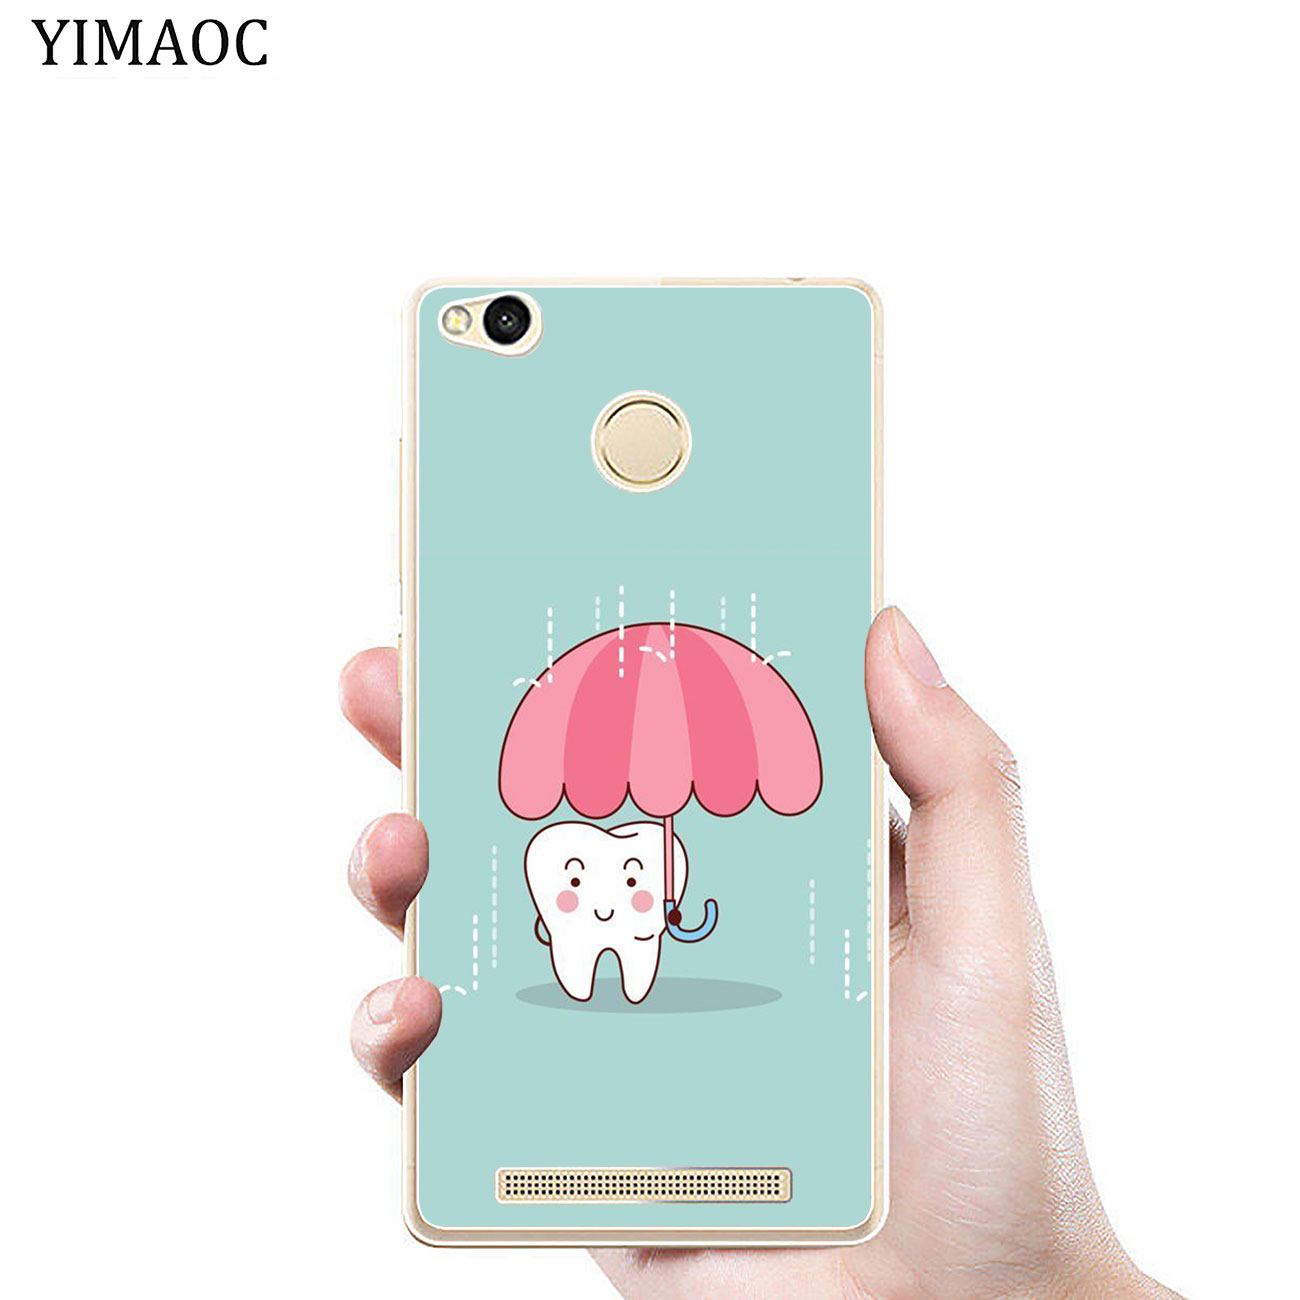 Cellphones & Telecommunications Silicone Cover Phone Case For Xiaomi Redmi S2y2 6 5 2 3 3s Pro Plus Redmi Note 4 4x 4a5a6a Nurse Doctor Dentist Tooth Injections